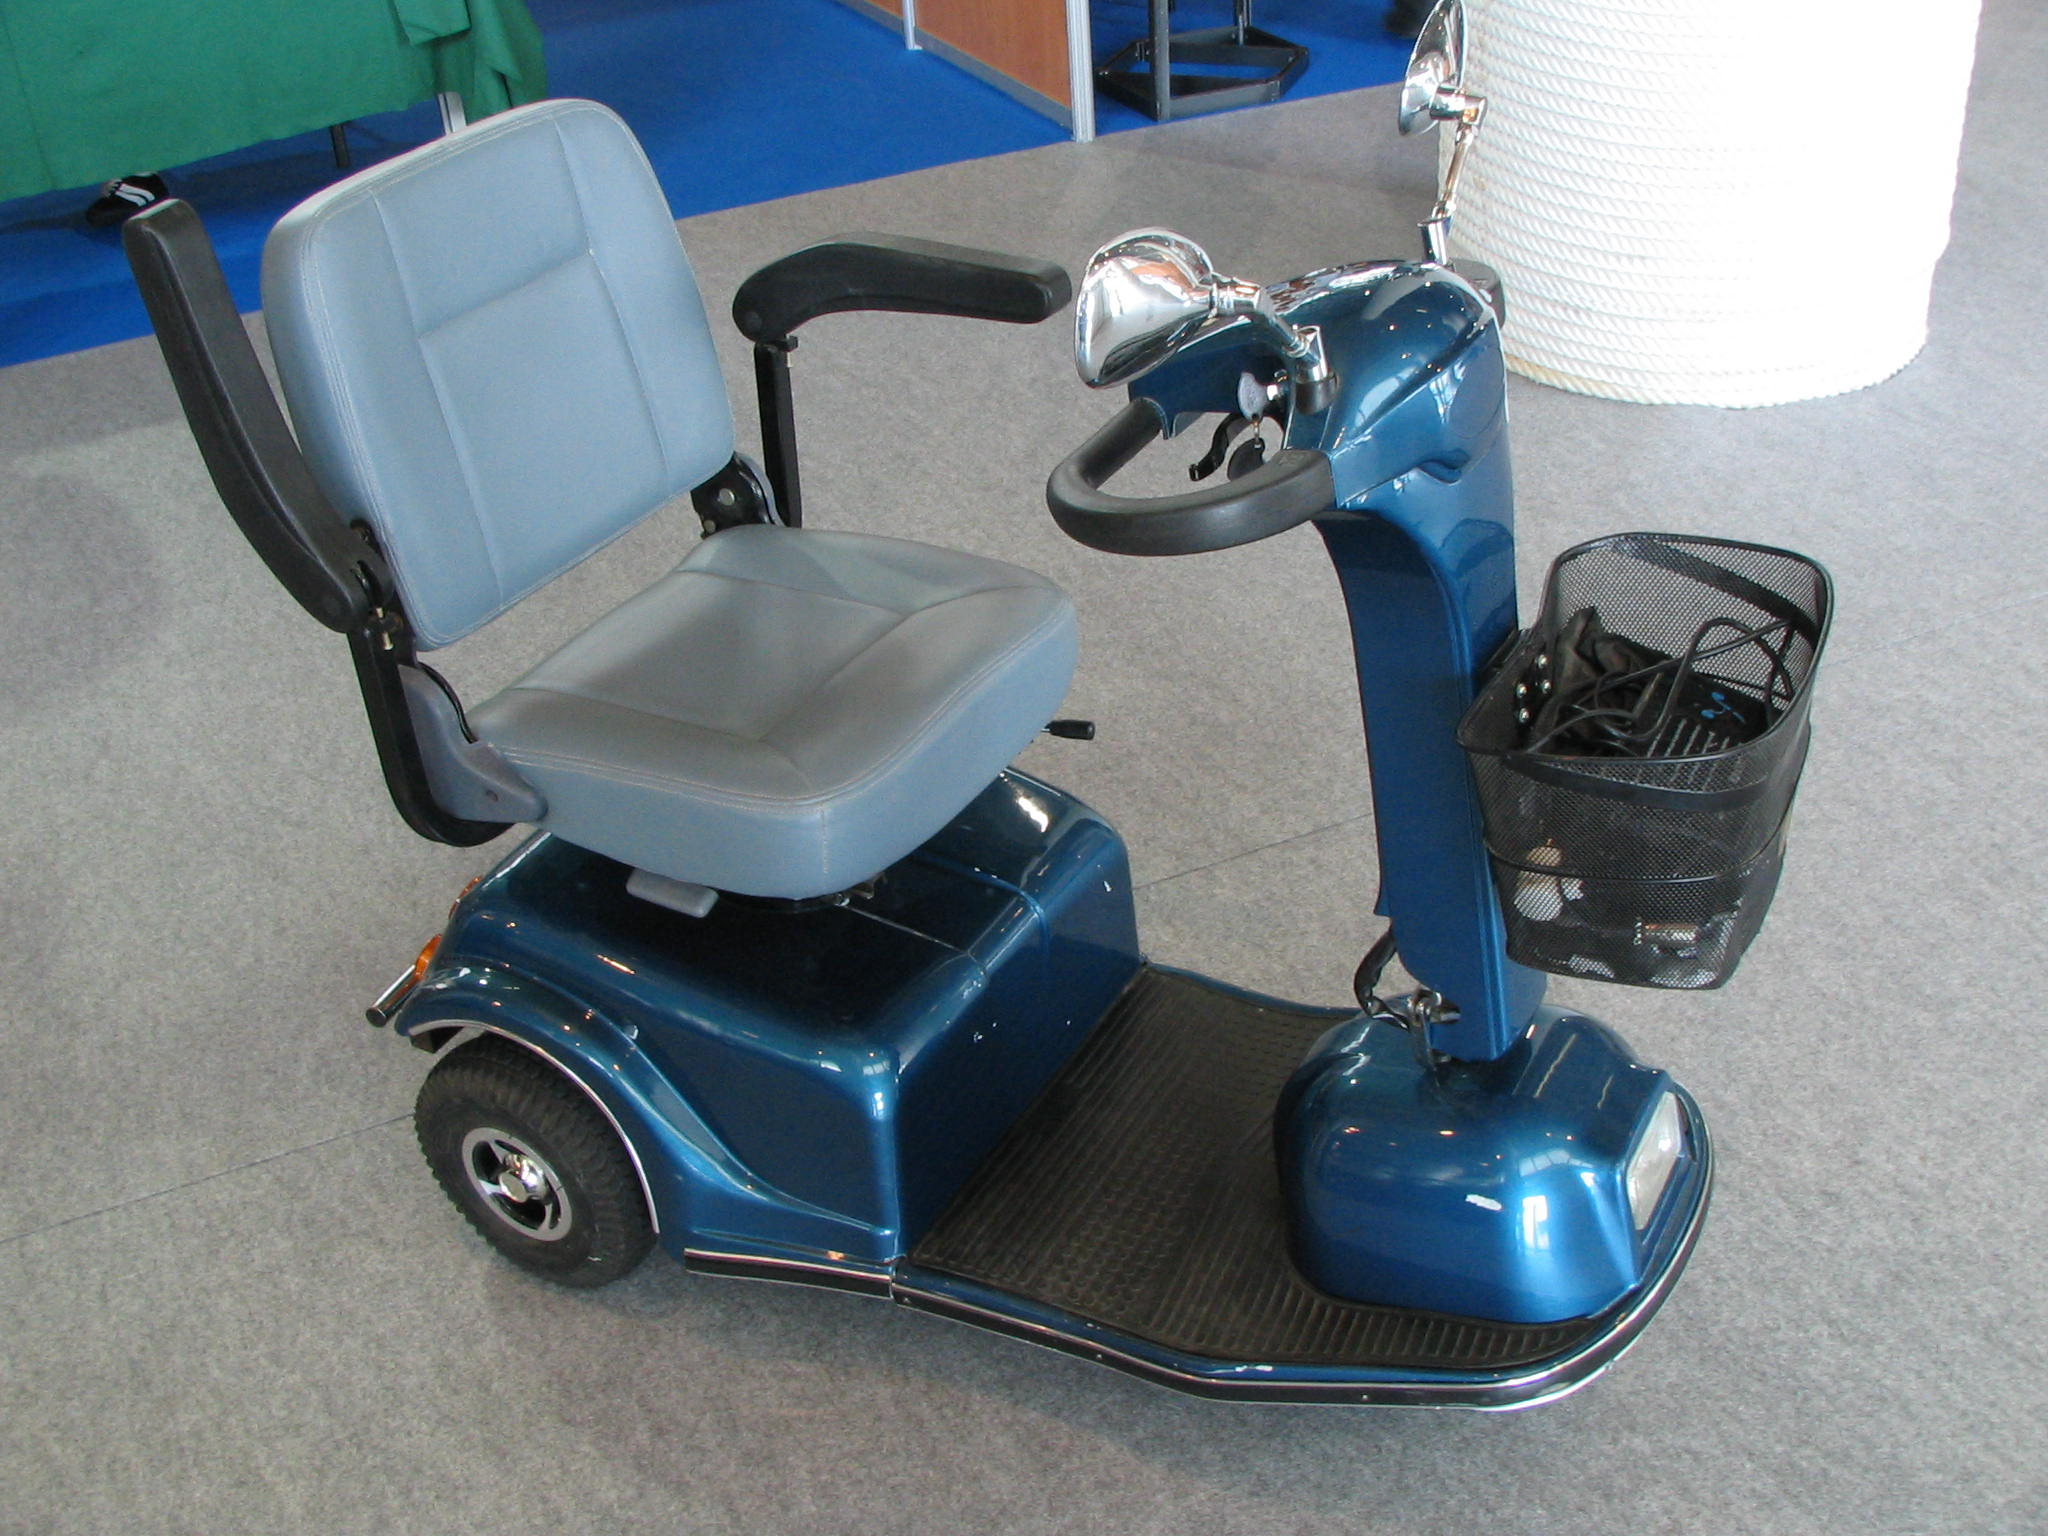 Mobile chair for walking disabled person